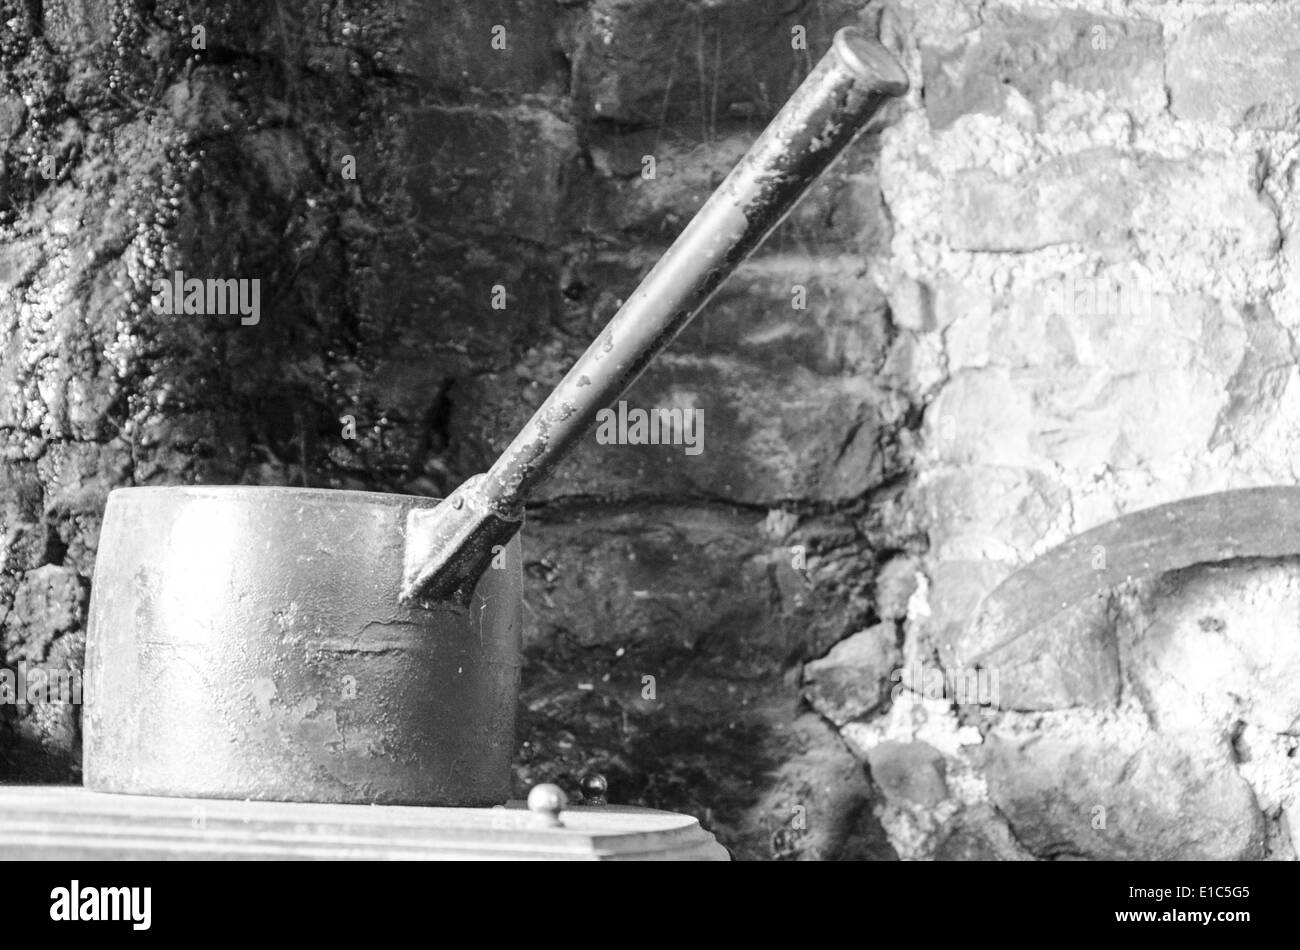 Old household items decorating an inn - Stock Image